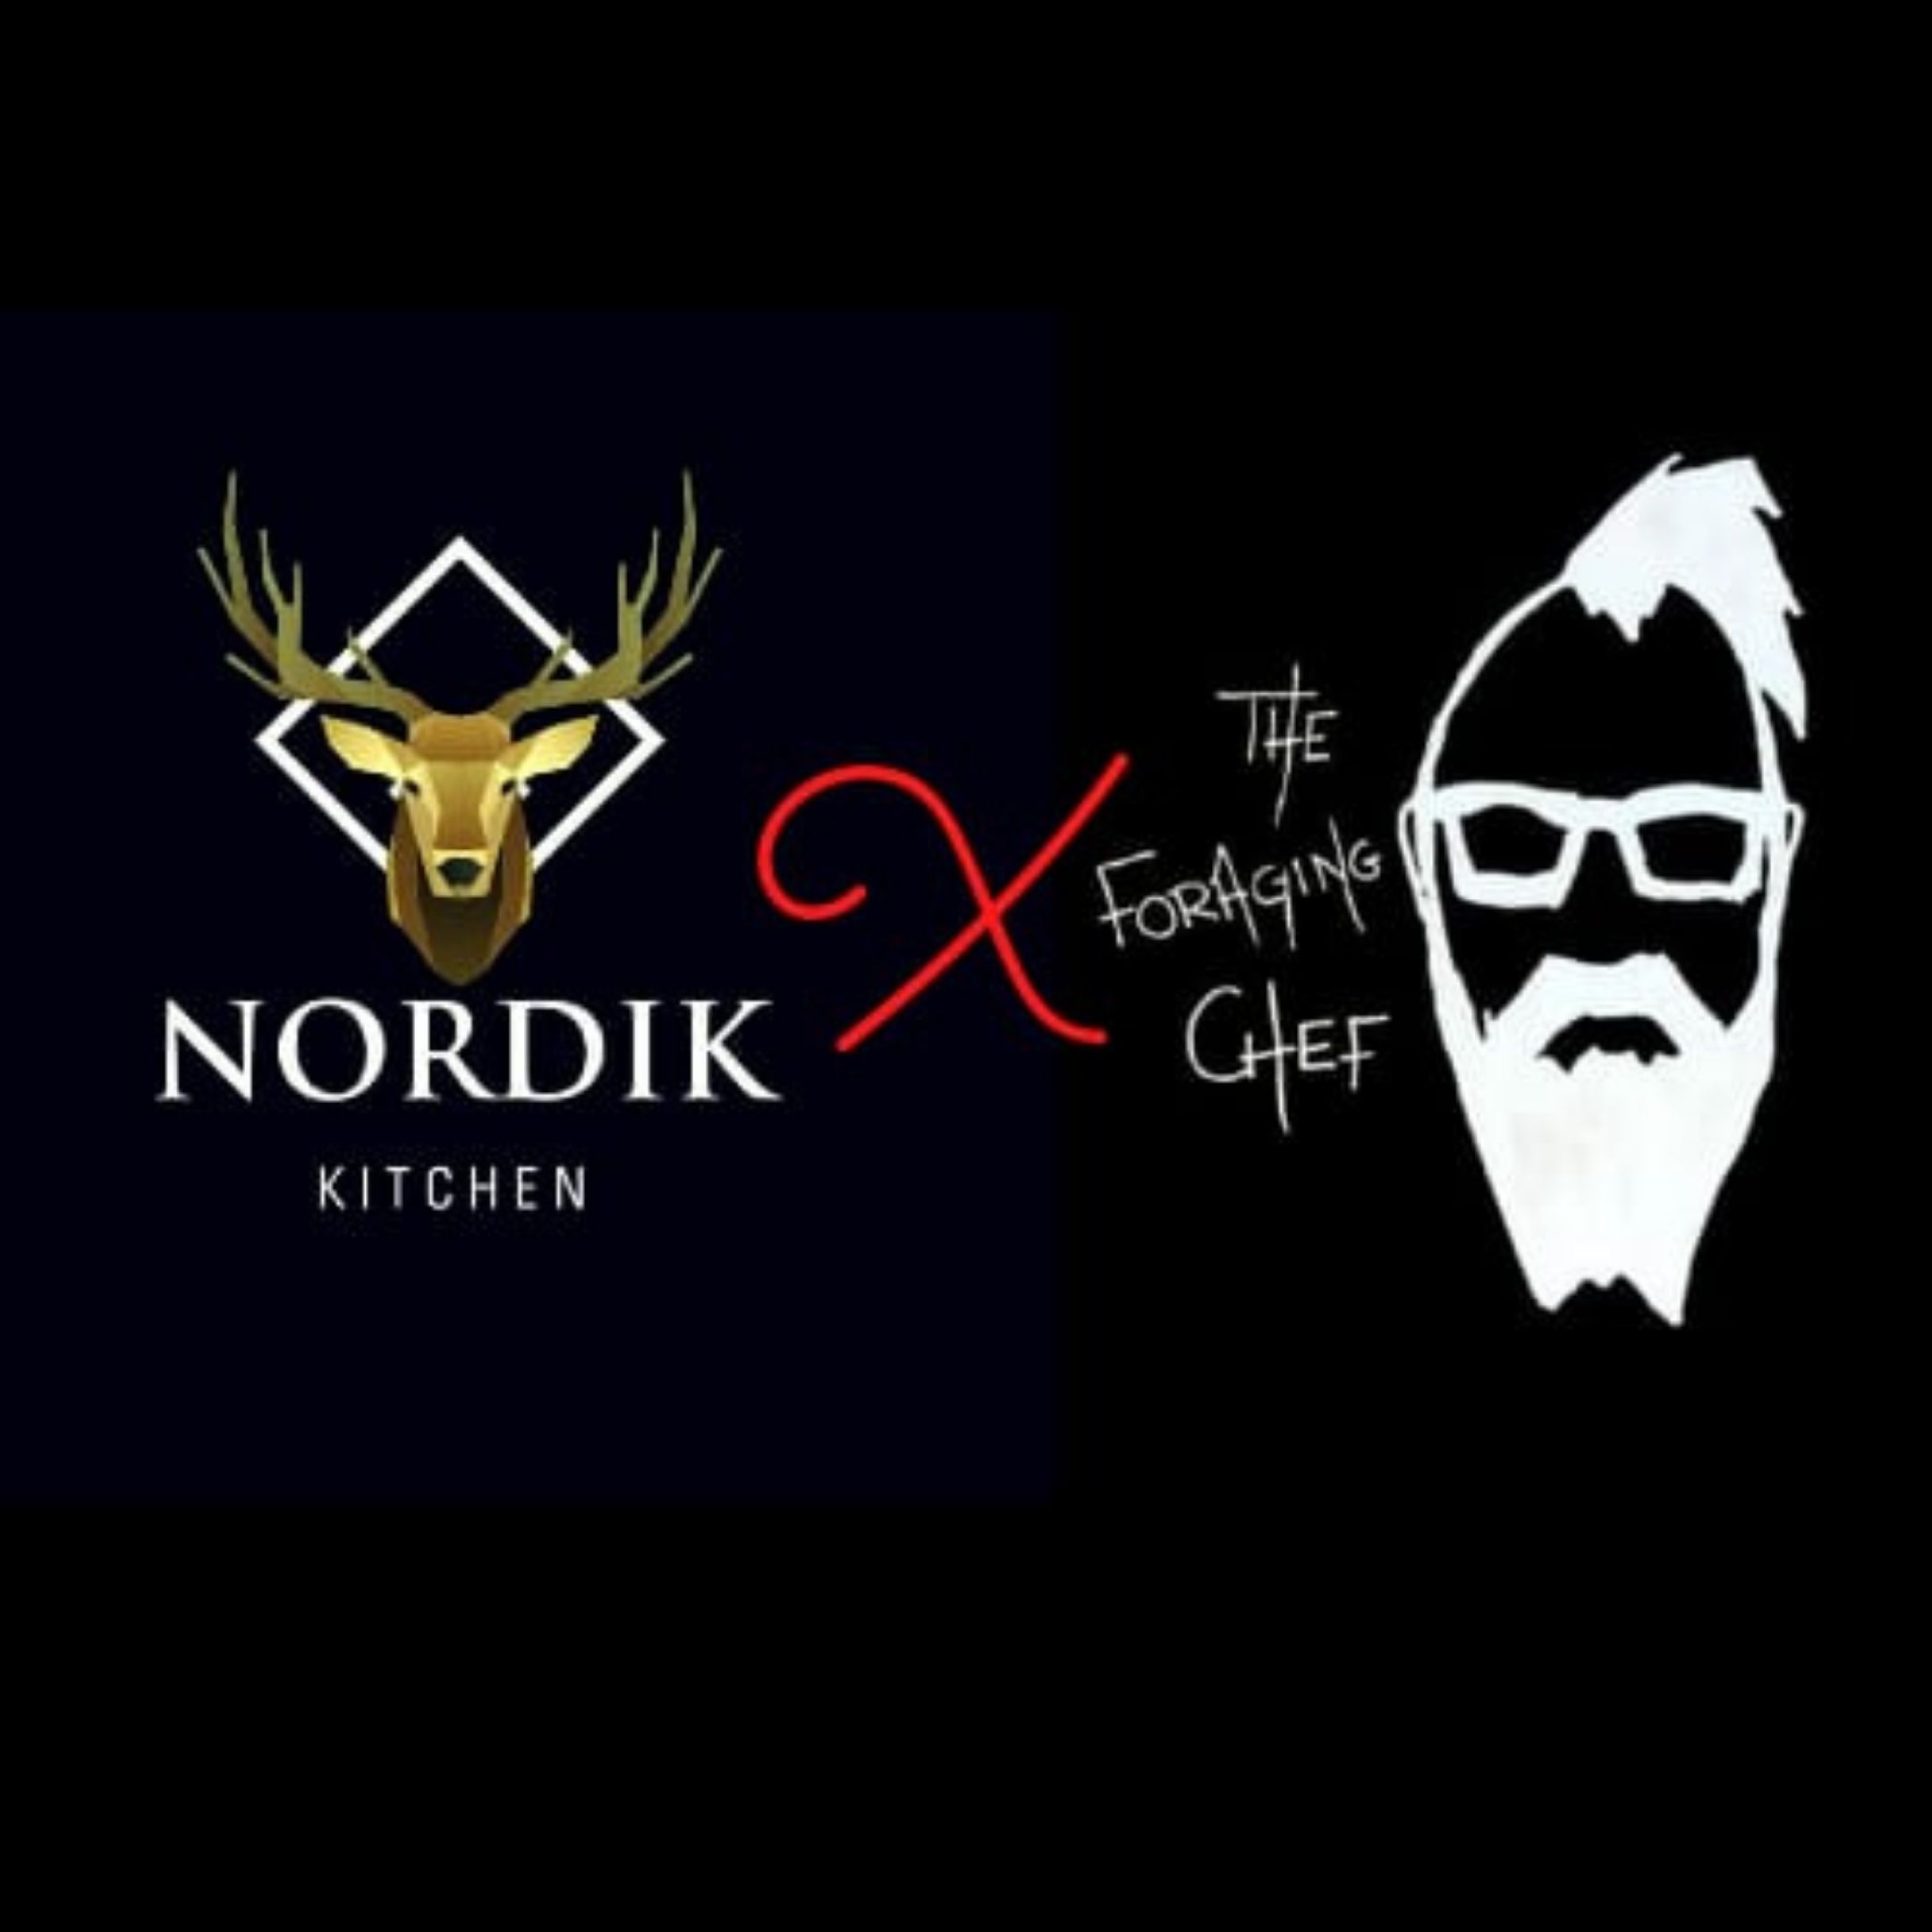 Nordik Kitchen and Foraging Chef